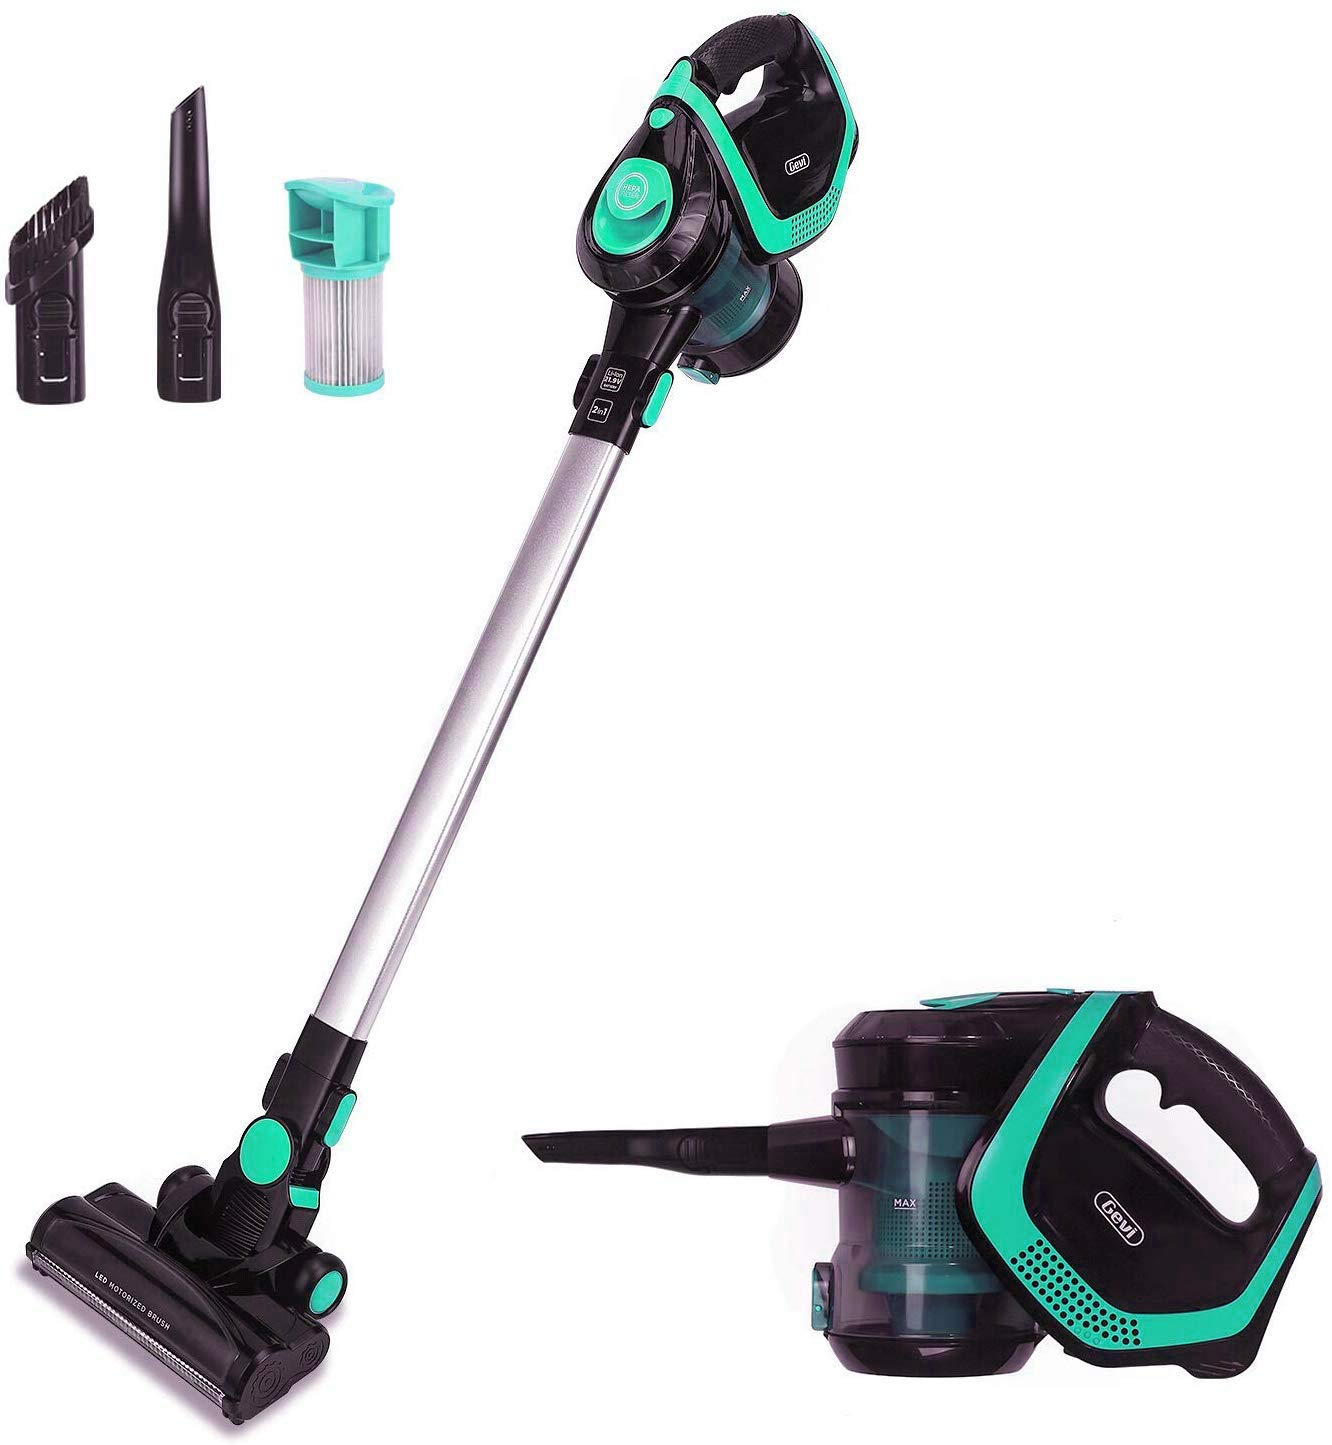 2 in 1 Upright Stick and Handhold Powerful Suction Vacuum Cleaner with Cordless Design and HEPA Filter, Lightweight and Rechargeable Wall Mounted Design (Green) (Geen-Black)